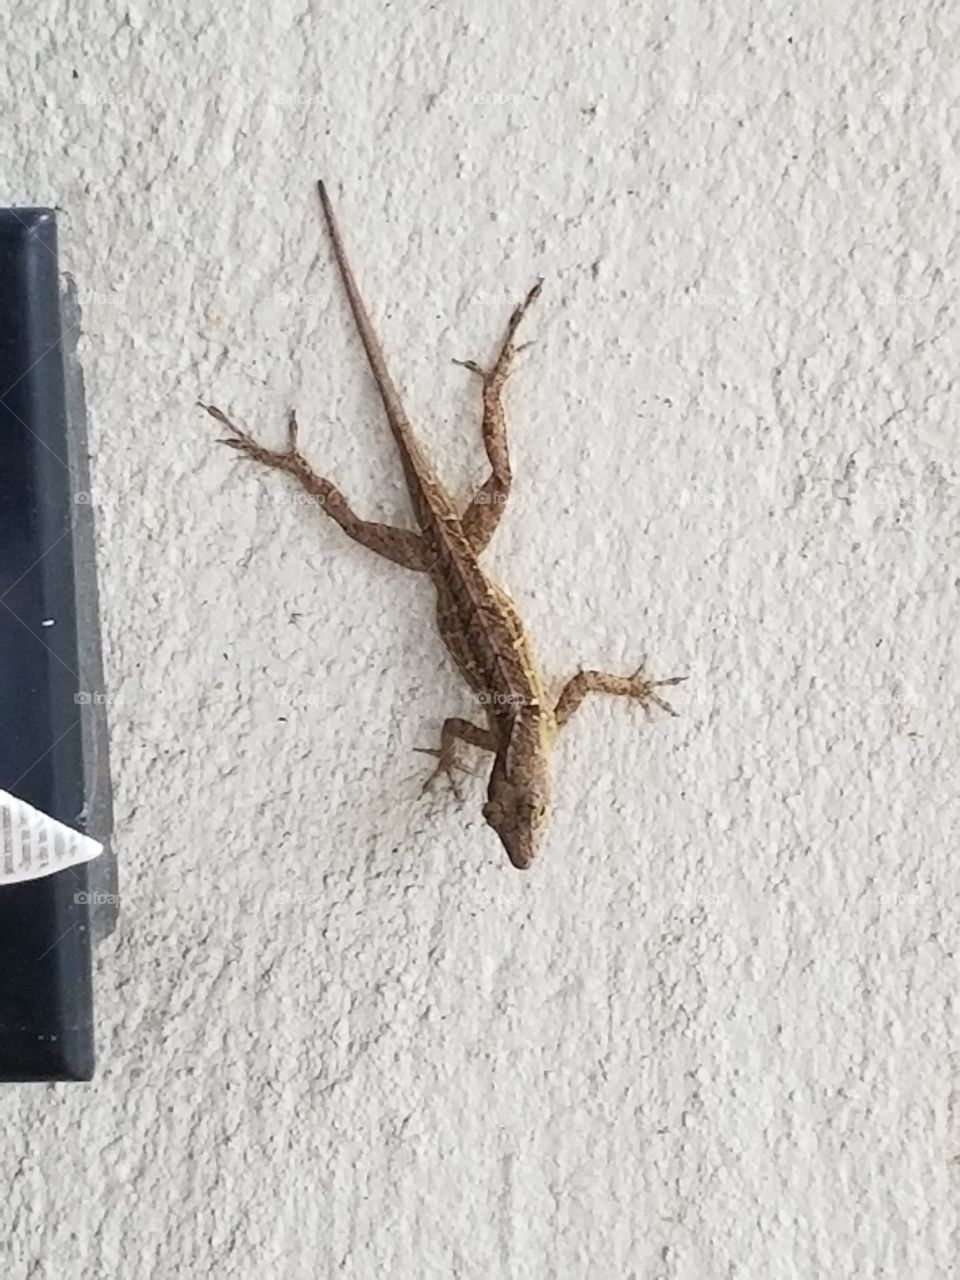 Chilling on the wall.  SoFlo Lizard